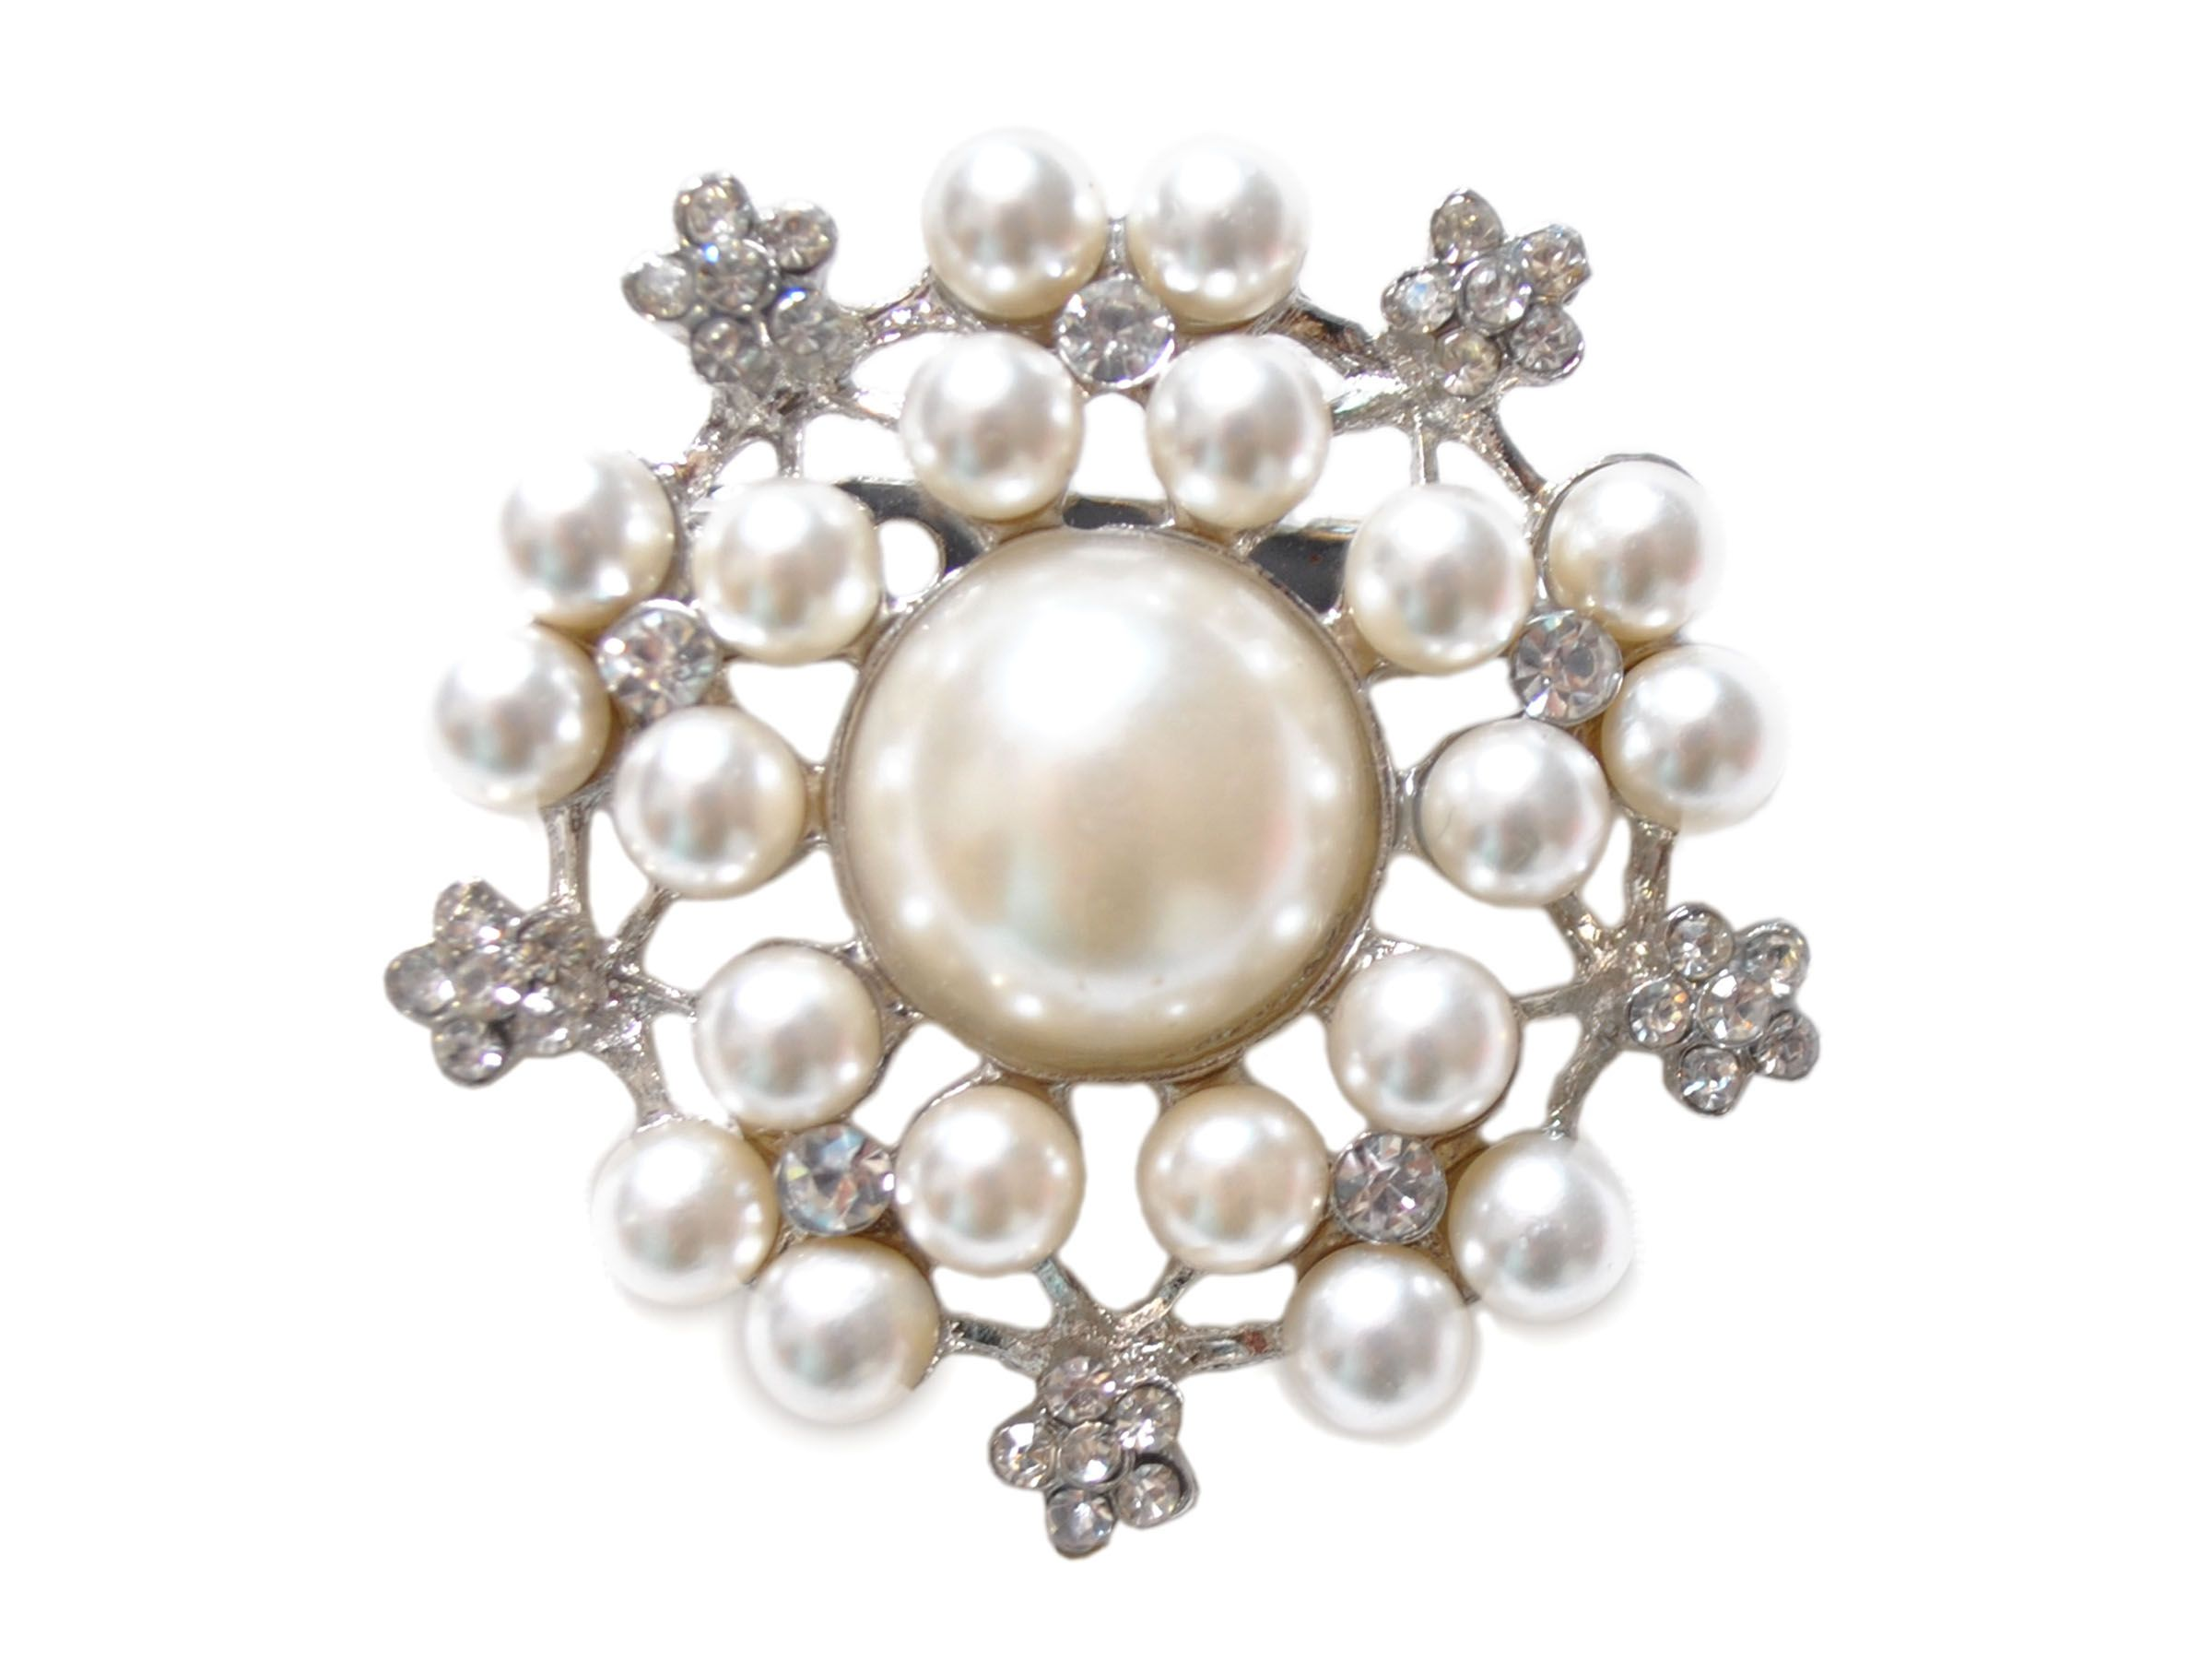 Wedding accessories pearls flowers pearls - Antiquariat Has An Extensive Range Of Exquisite High Quality Fine Jewelry